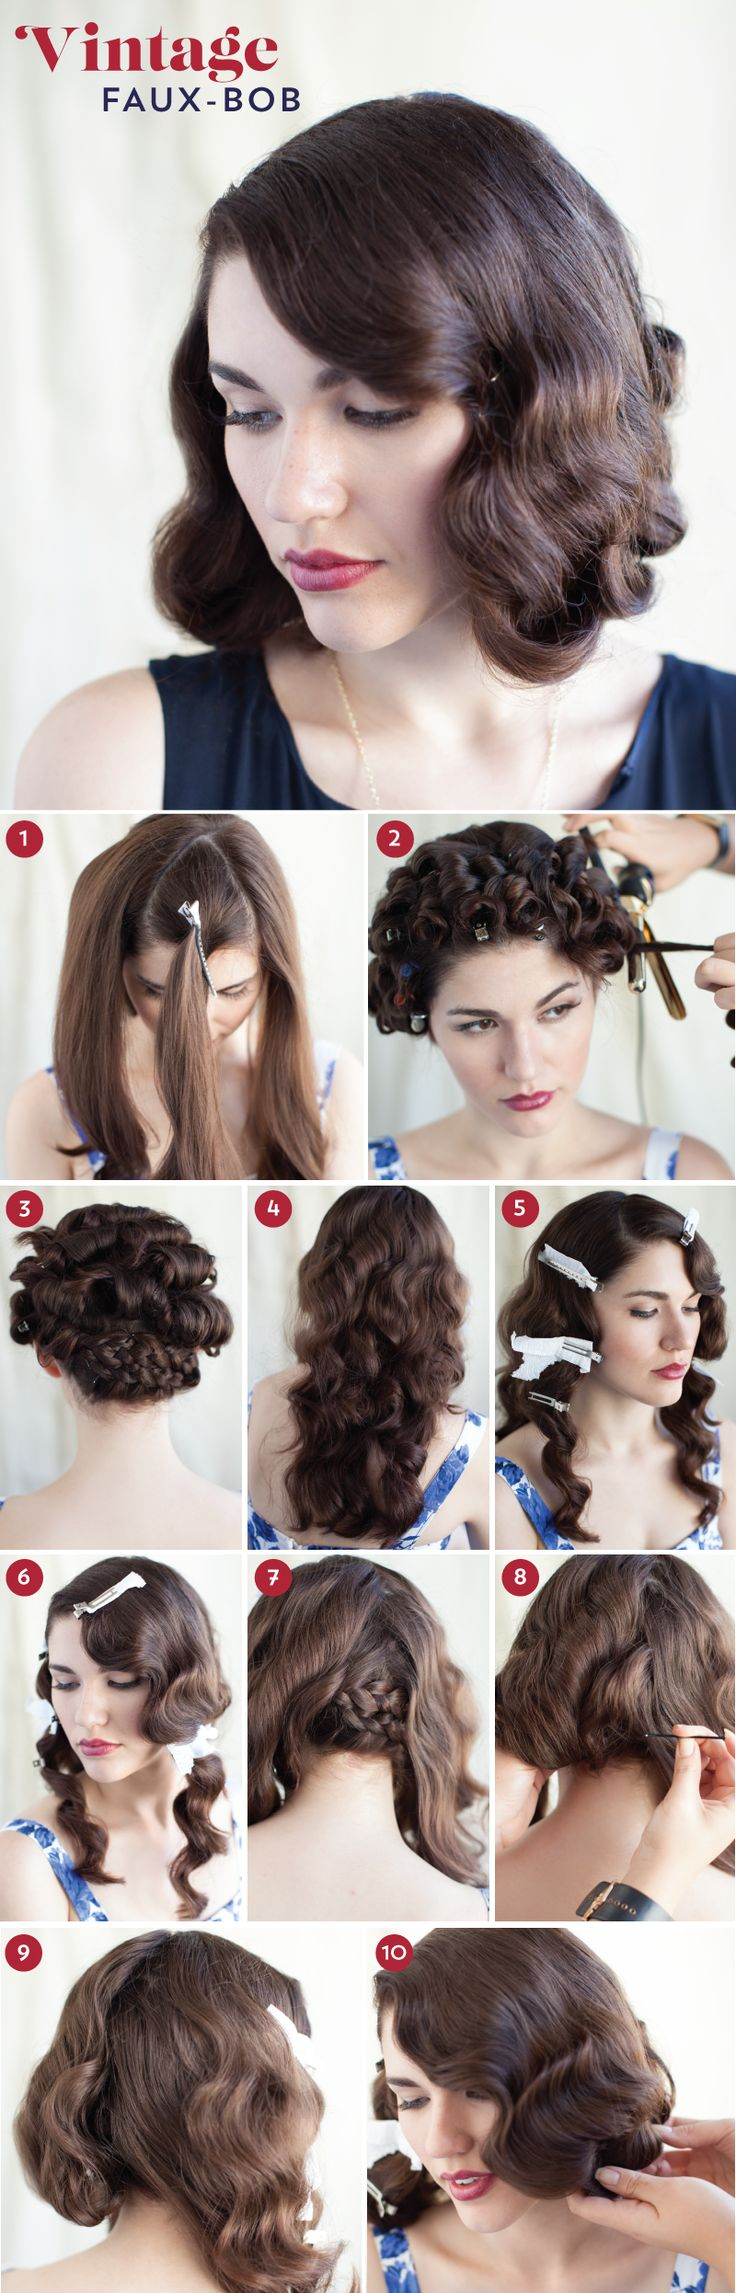 DIY | Vintage Faux-Bob Tutorial Maybe I'll stop cutting my hair and just try this.